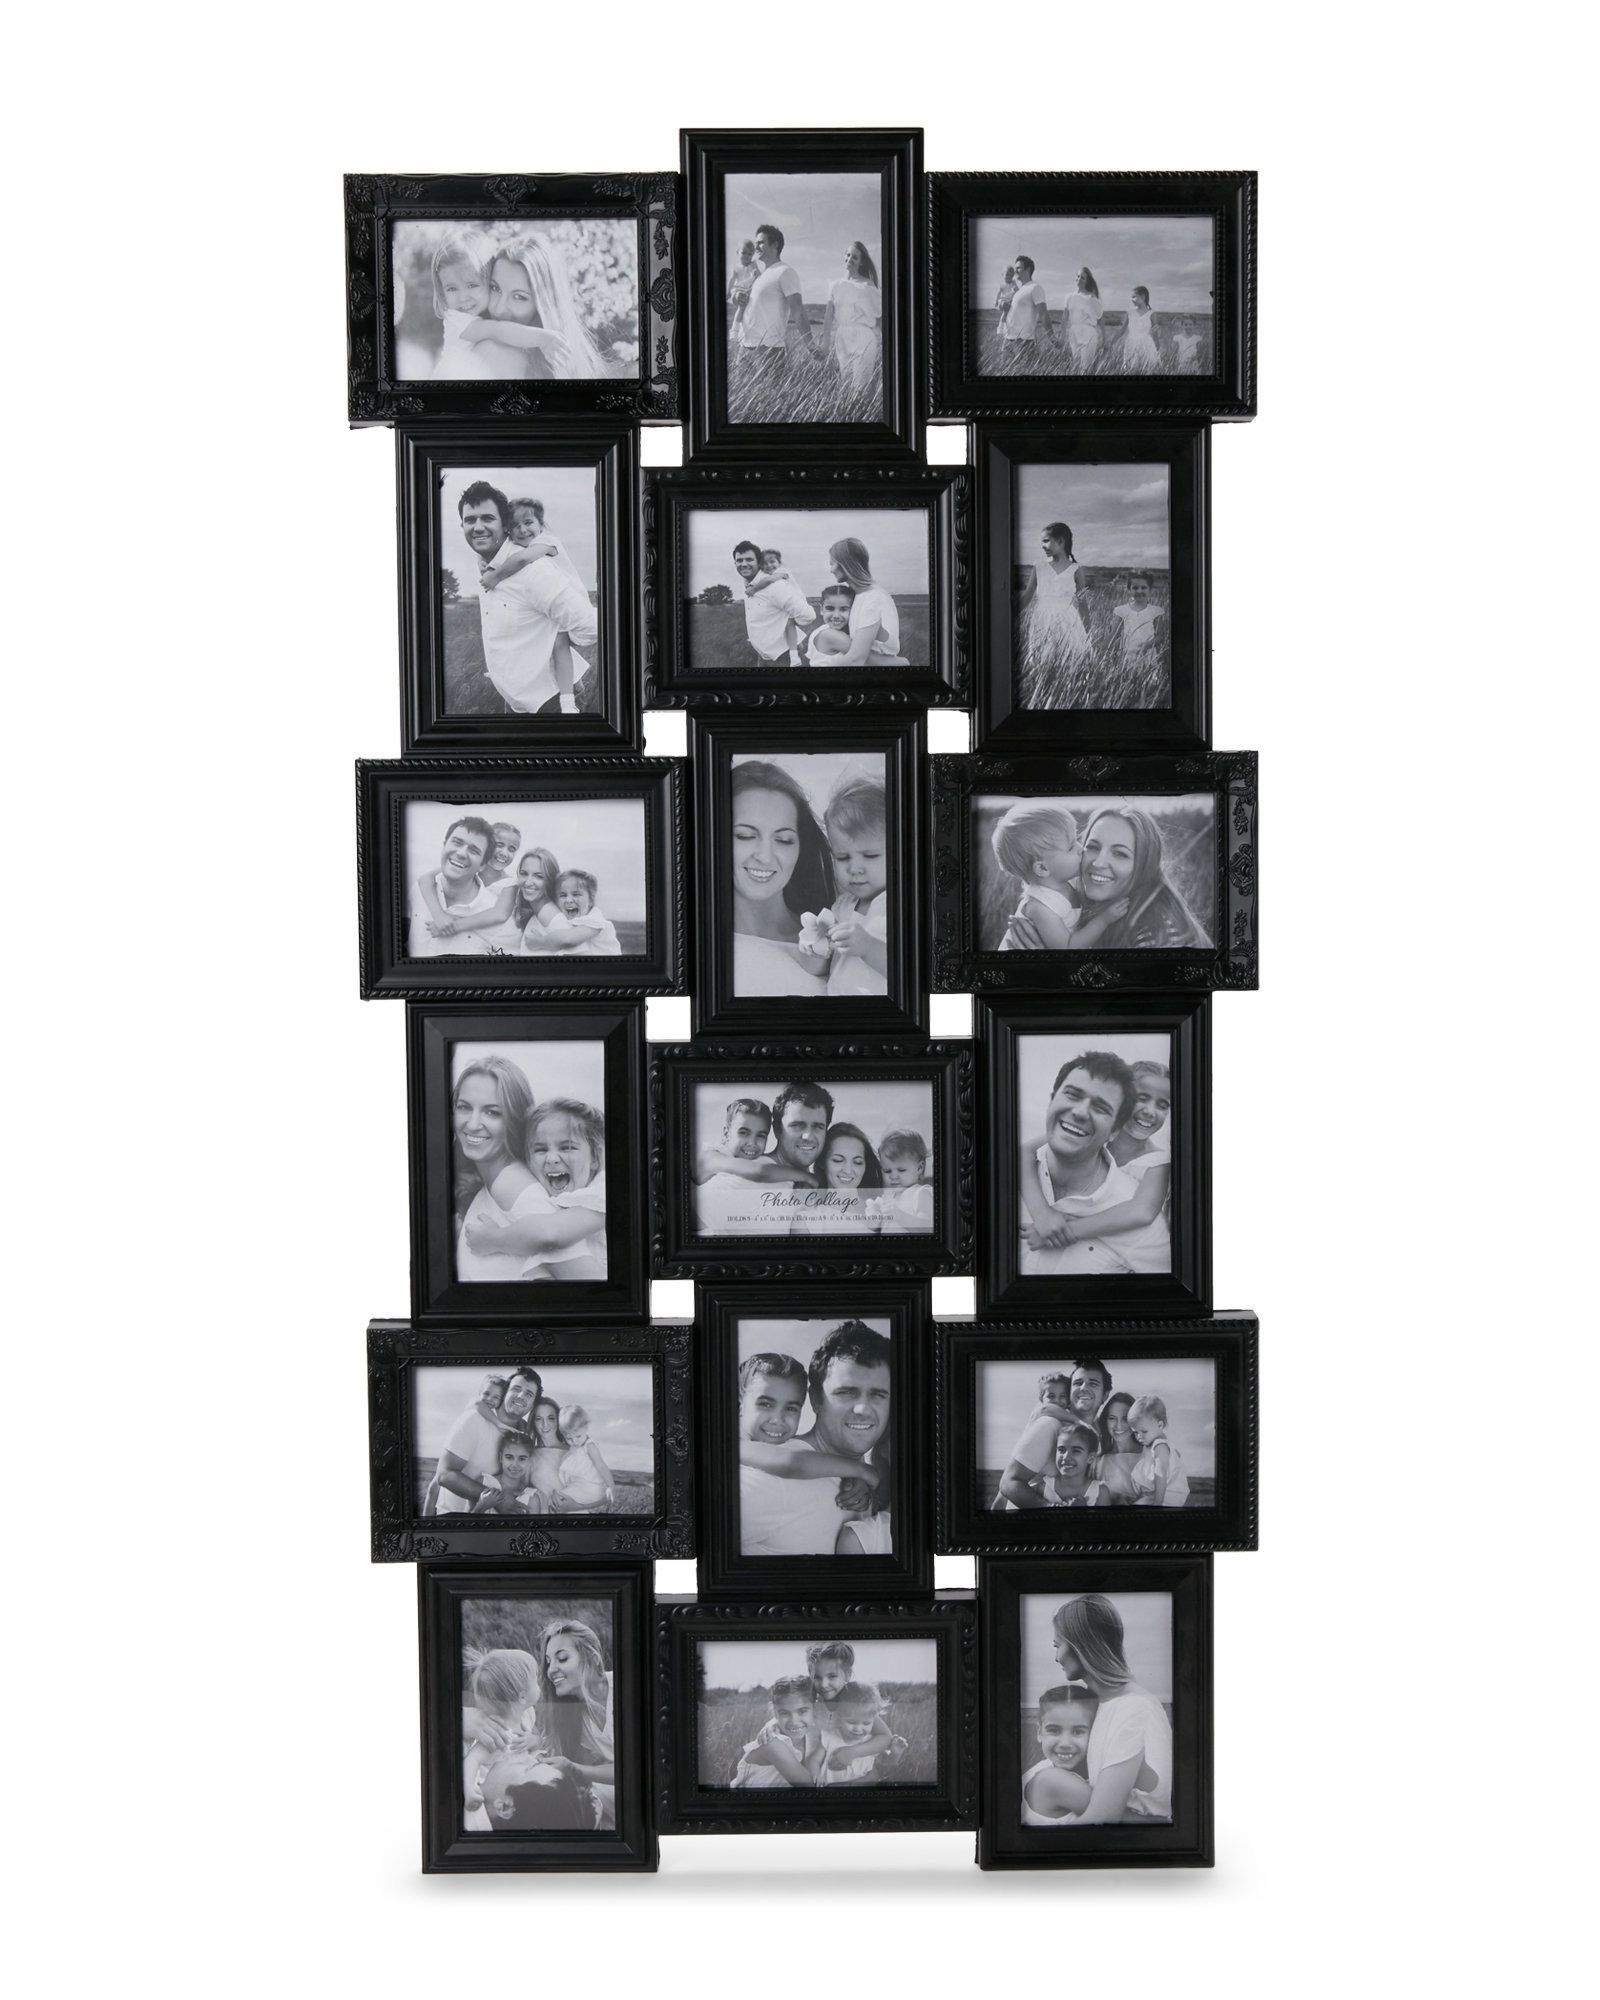 Crystal Art Gallery 4 Quot X 6 Quot Collage Wall Picture Frame Picture Frame Wall Picture Wall Gallery Wall Layout